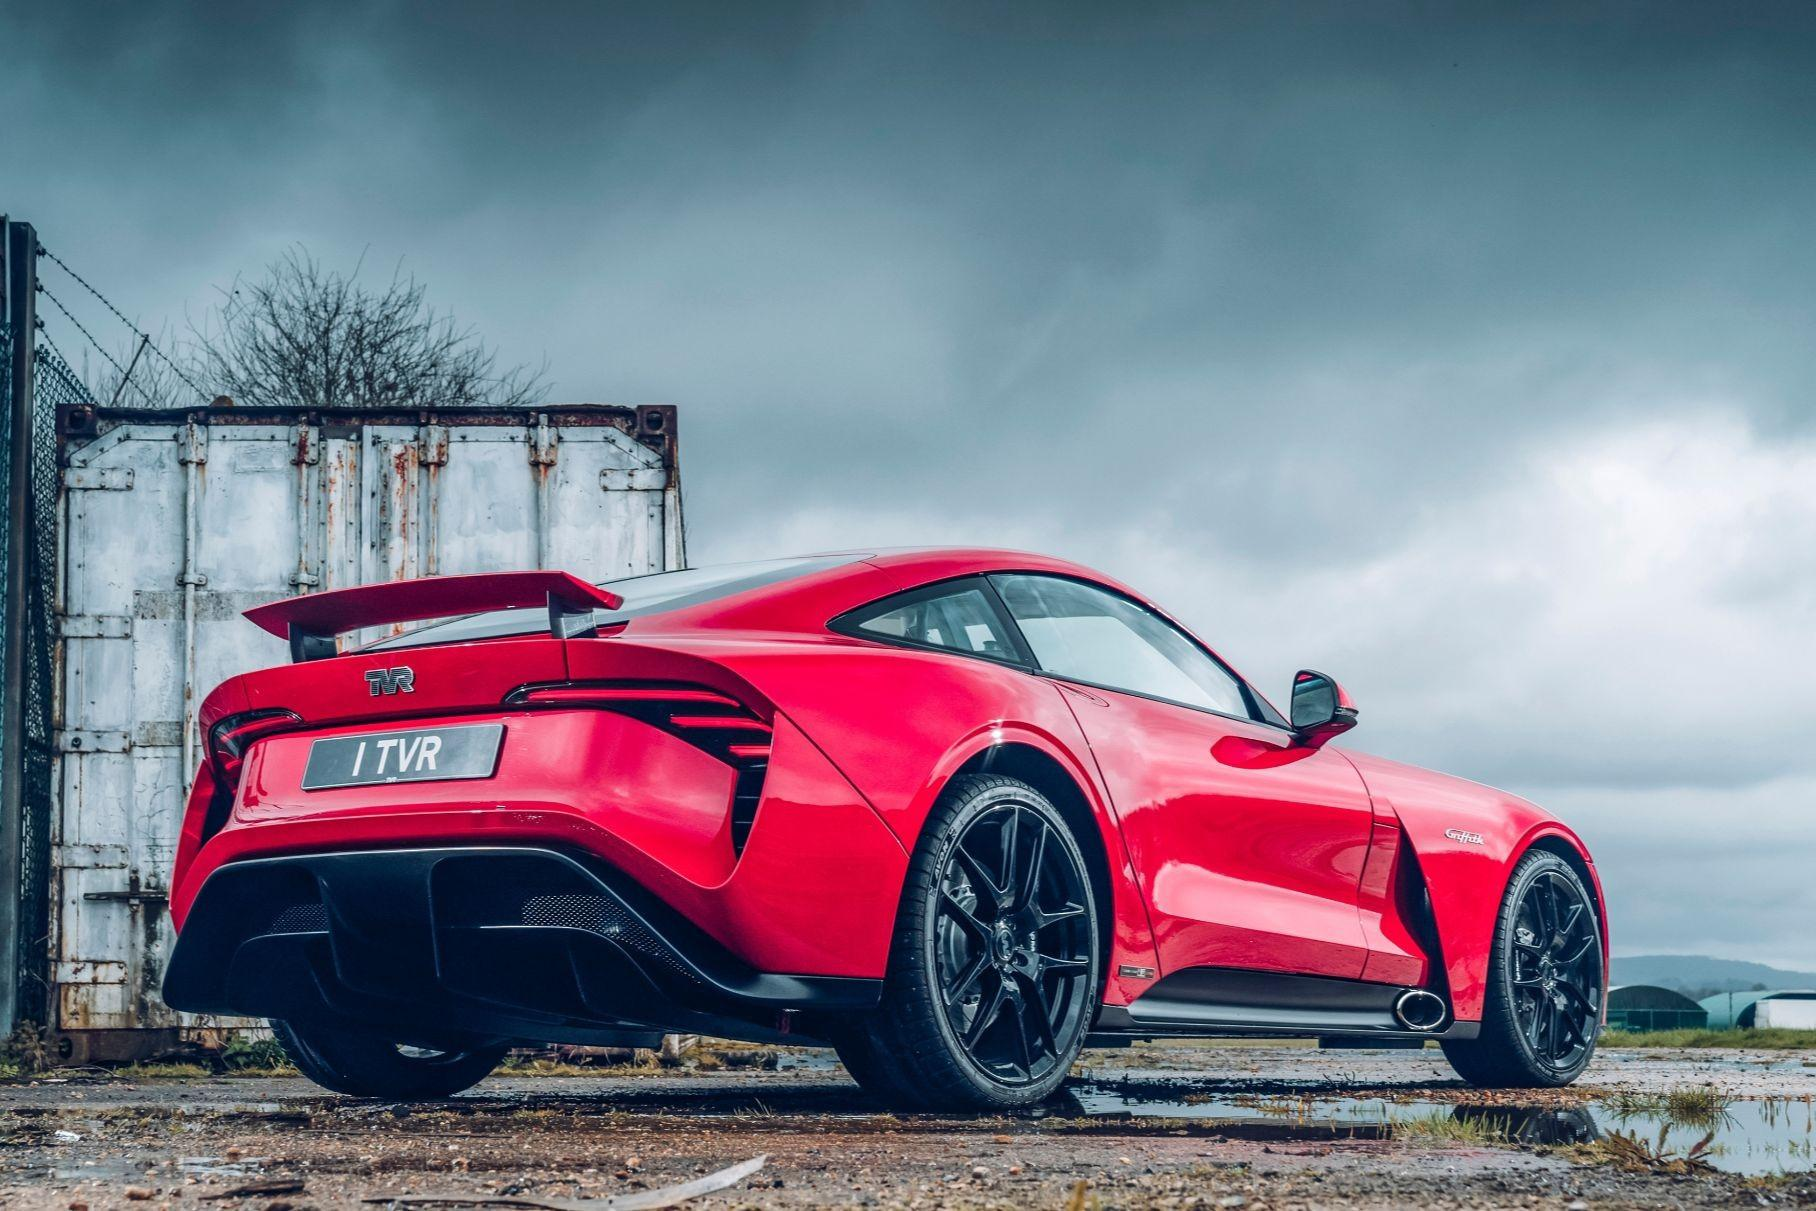 TVR announced its Griffith sports car four years ago, but the carmaker is still looking for investment to begin the production. It is now official that the car will have a hybrid and an all-electric version when (if?) it ships.